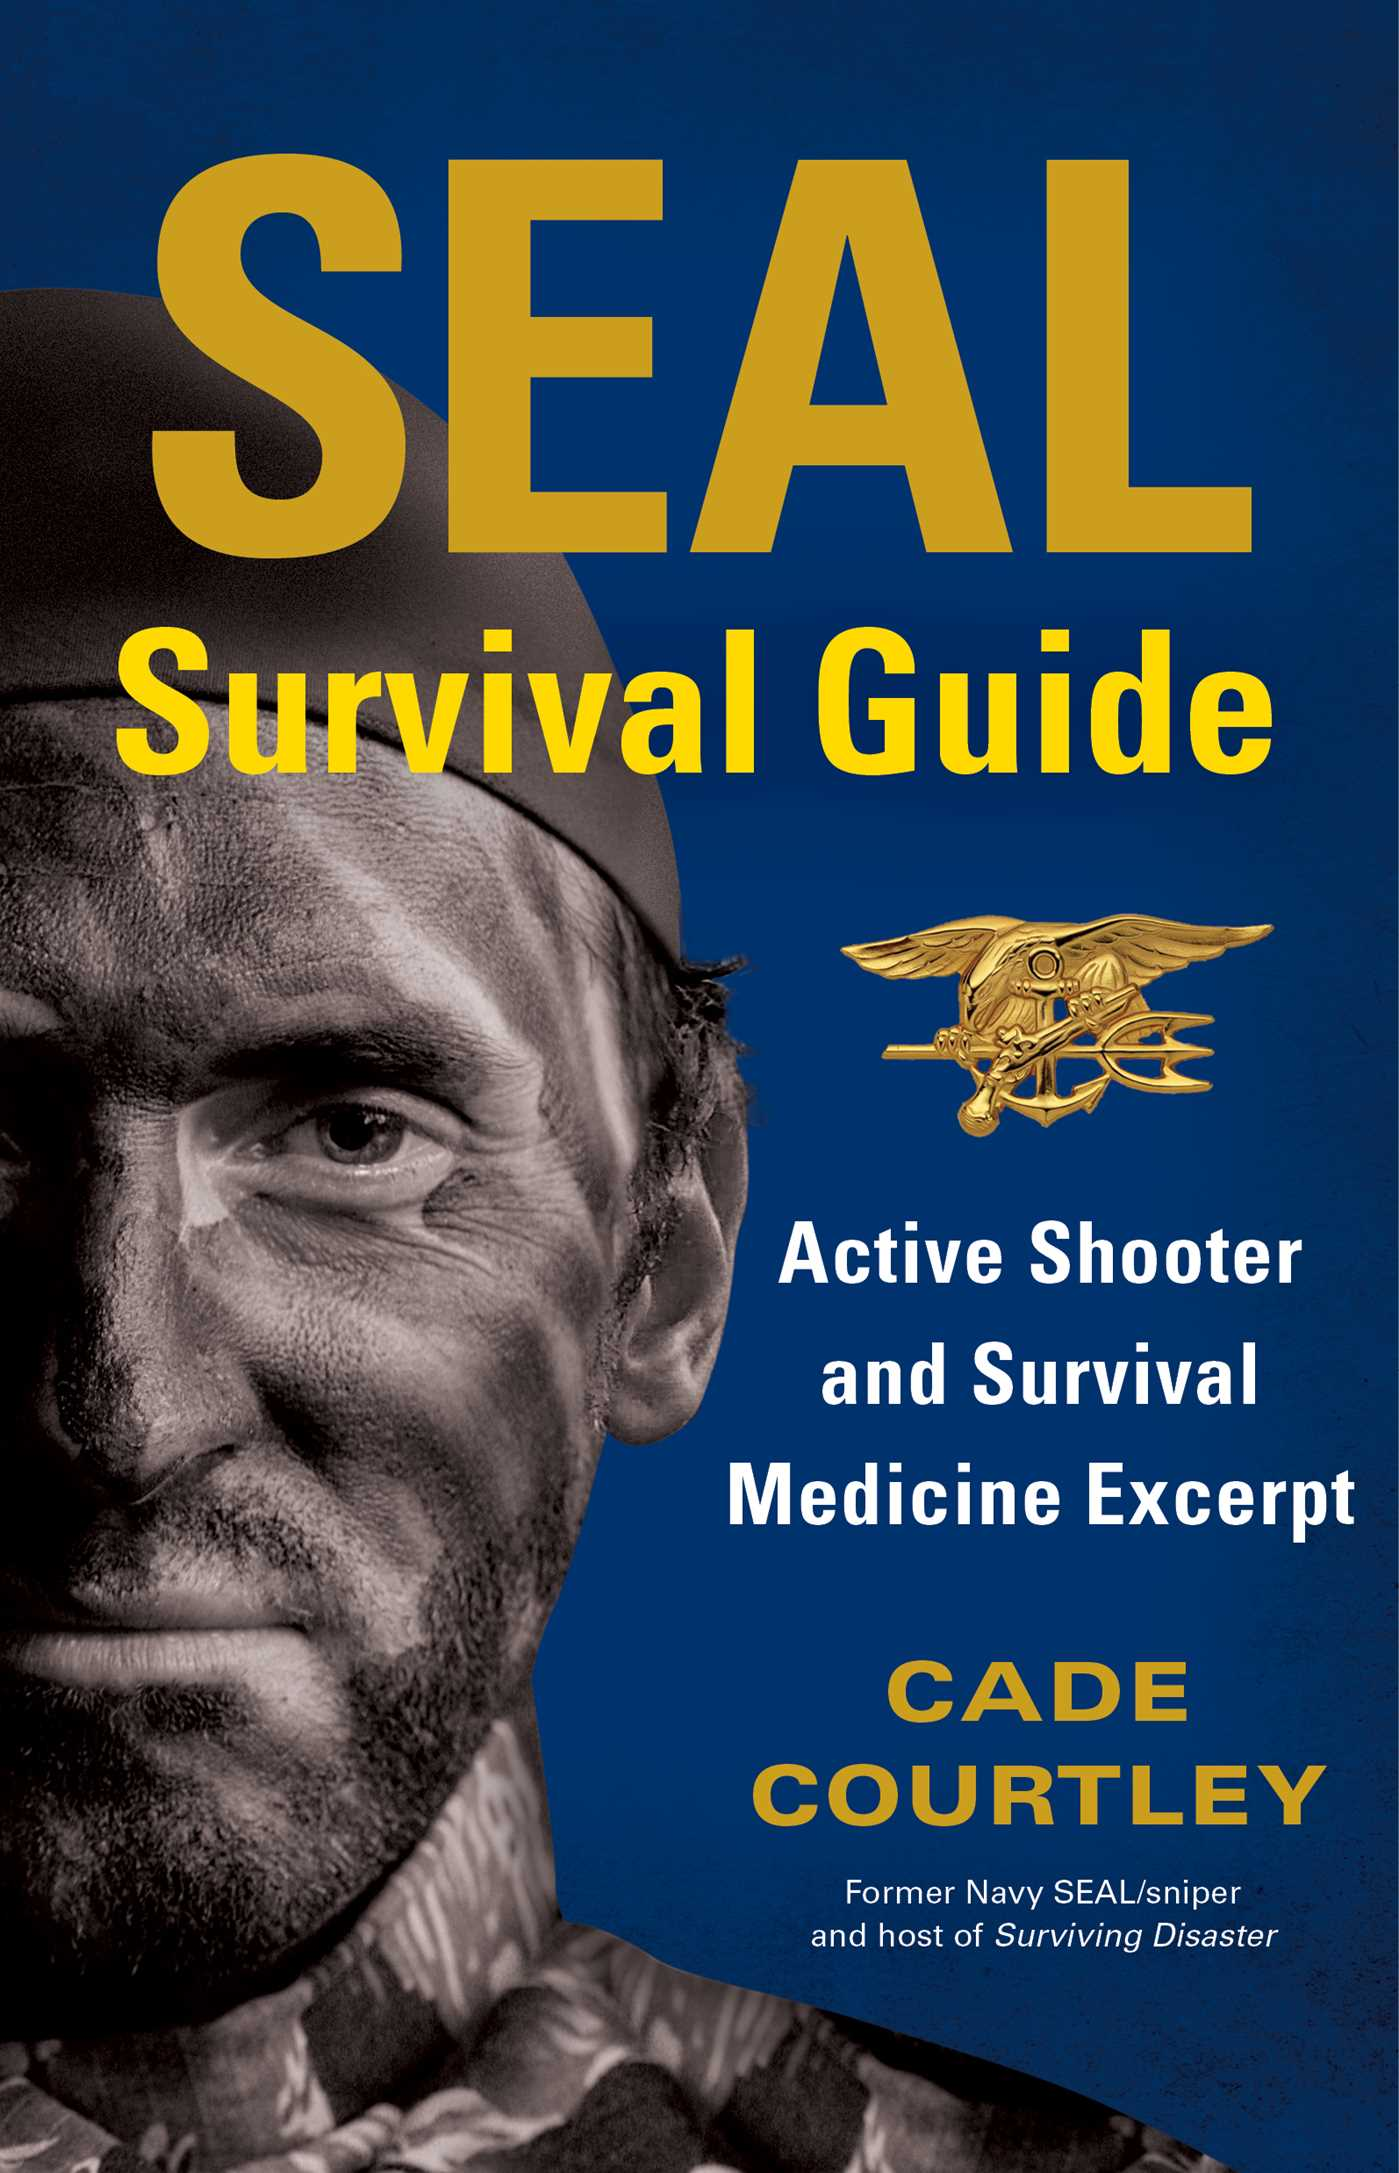 """""""SEAL SURVIVAL GUIDE"""", by Cade Courtley, turbomind.com"""